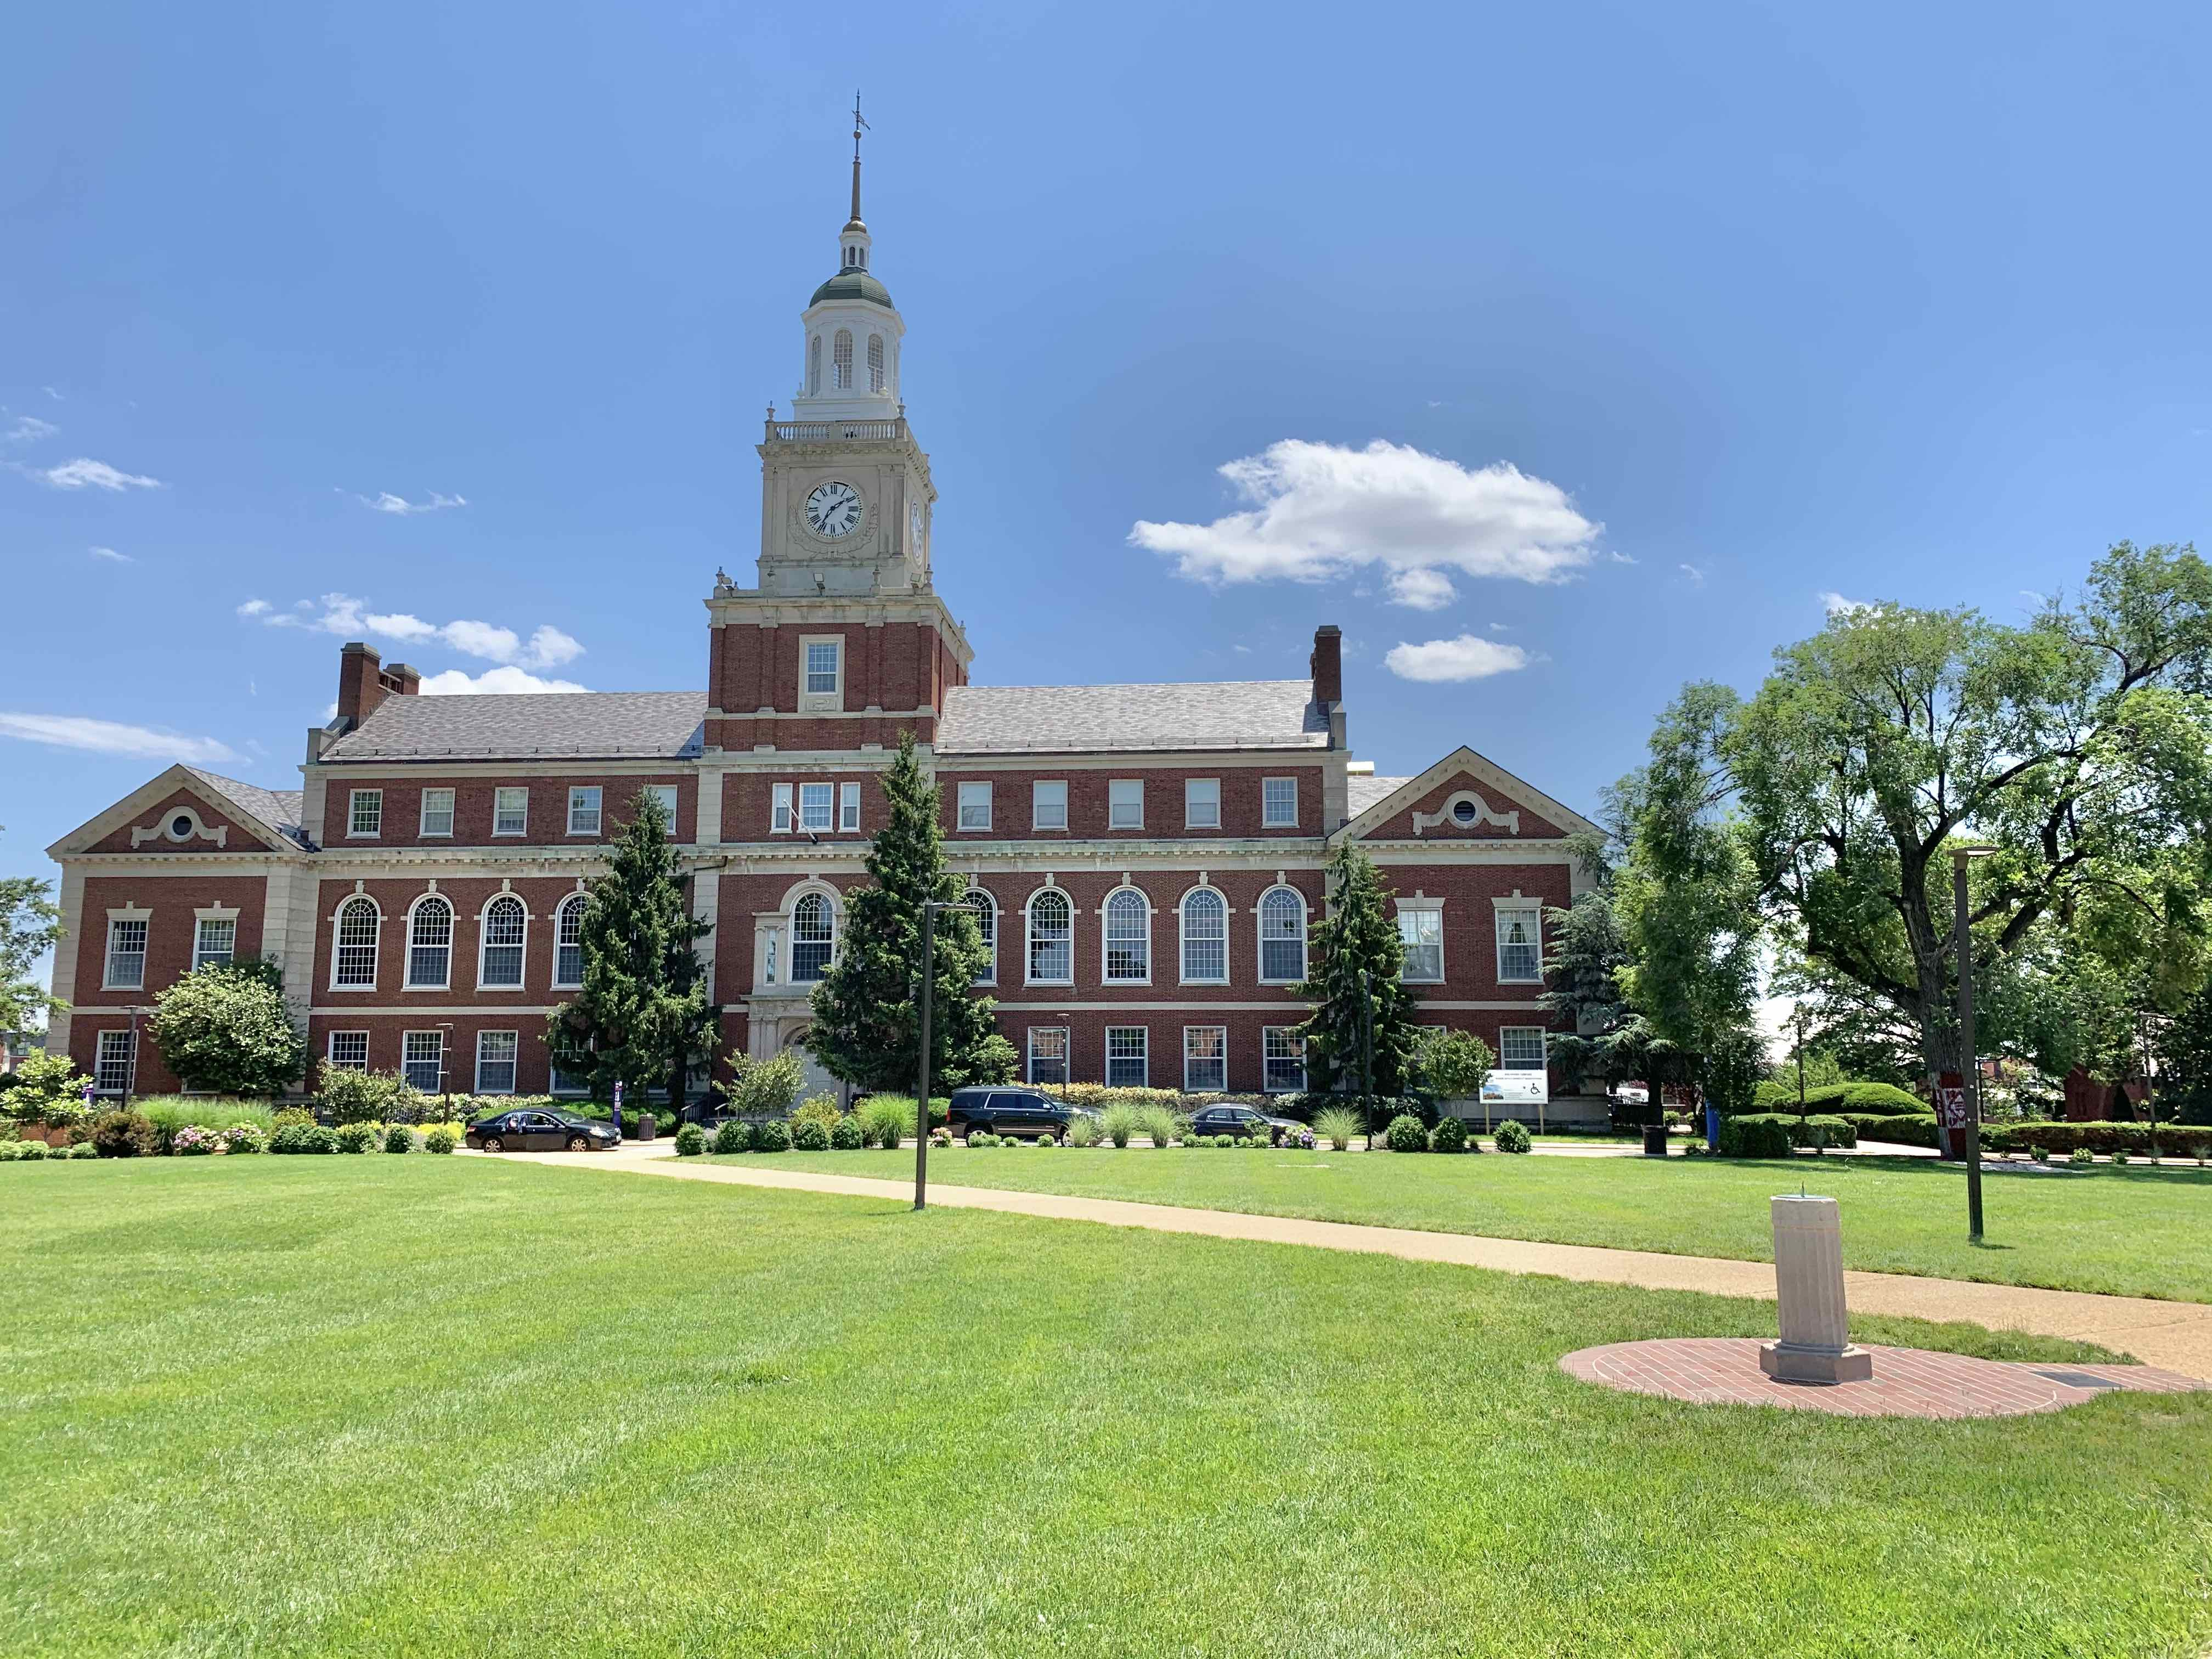 Howard University's Founders Library from the perspective of the upper quadrangle, also known as the yard.